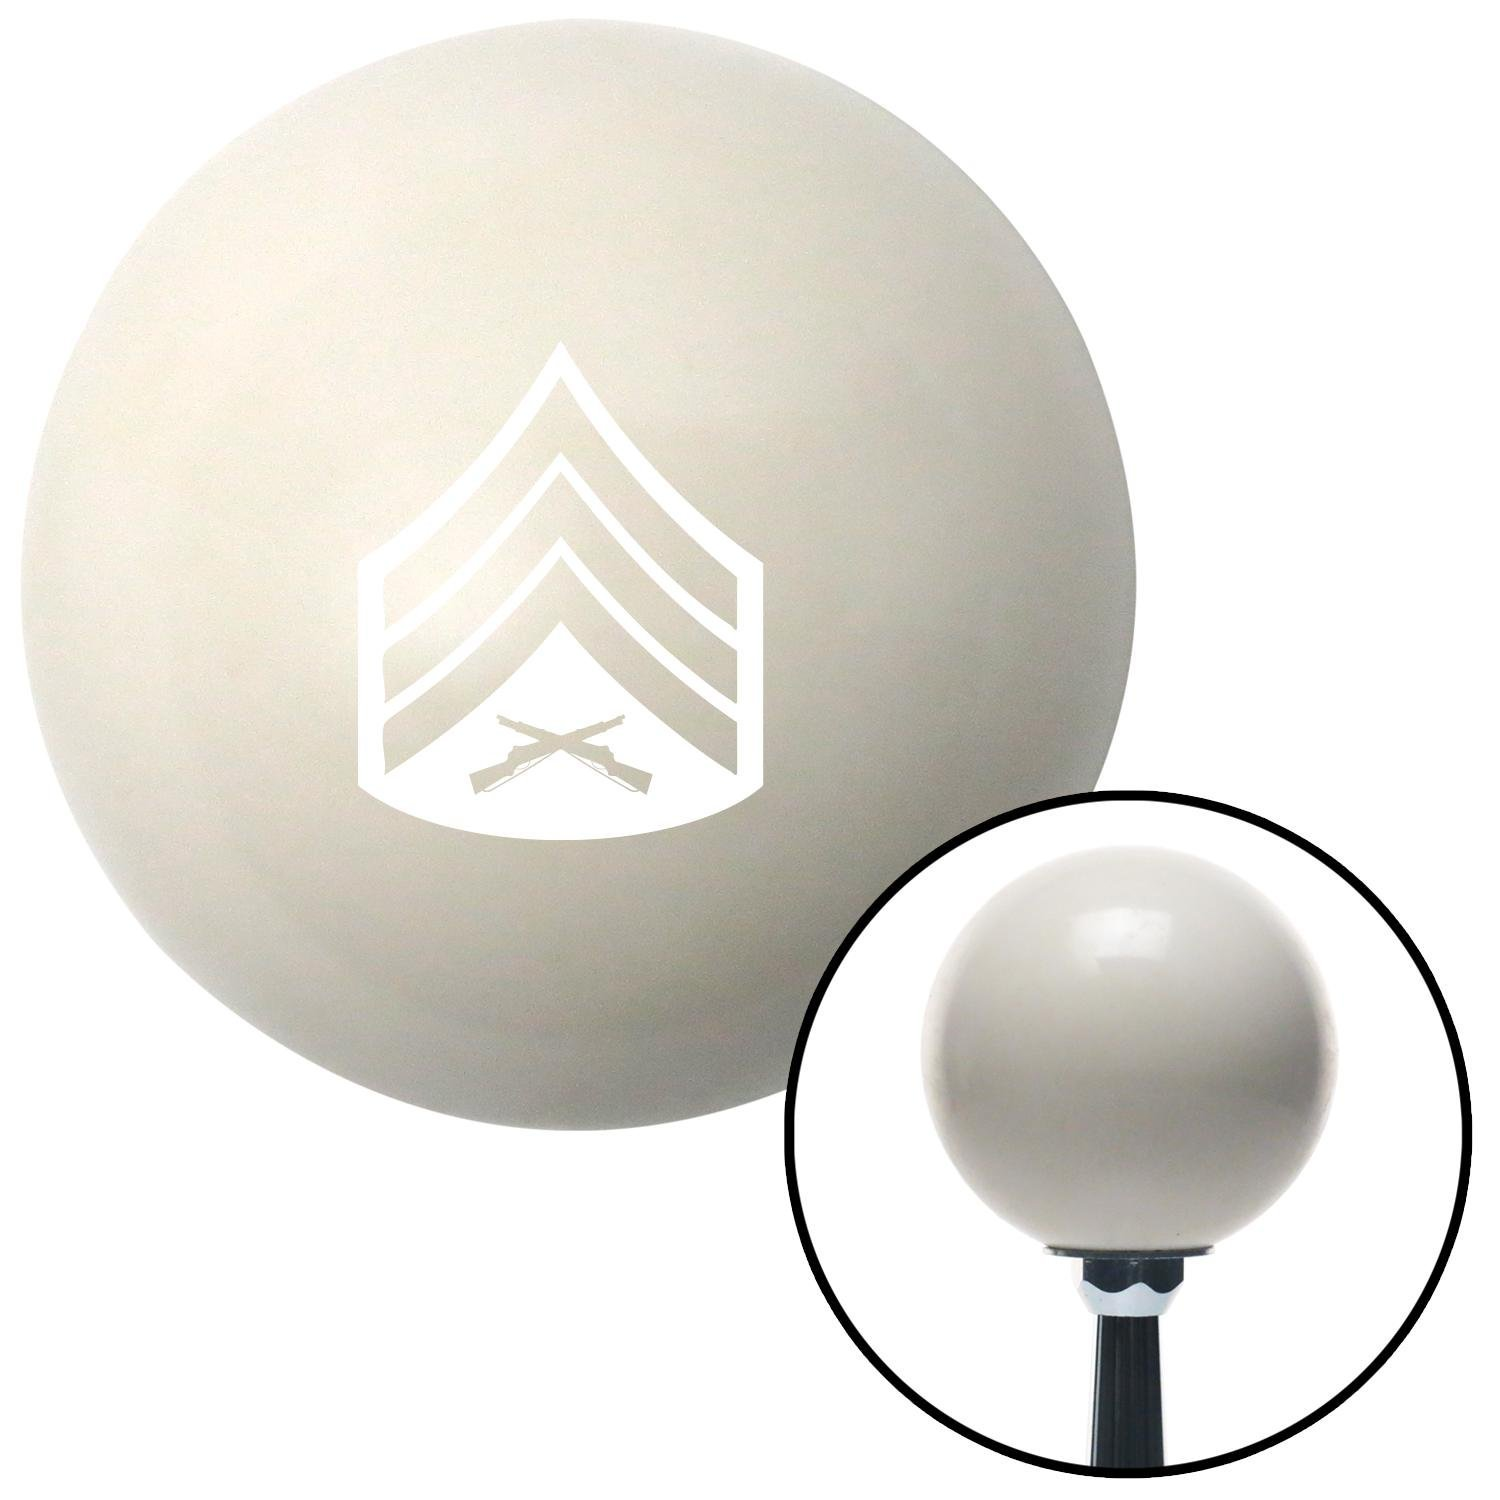 American Shifter 40713 Ivory Shift Knob with 16mm x 1.5 Insert White 04 Sergeant